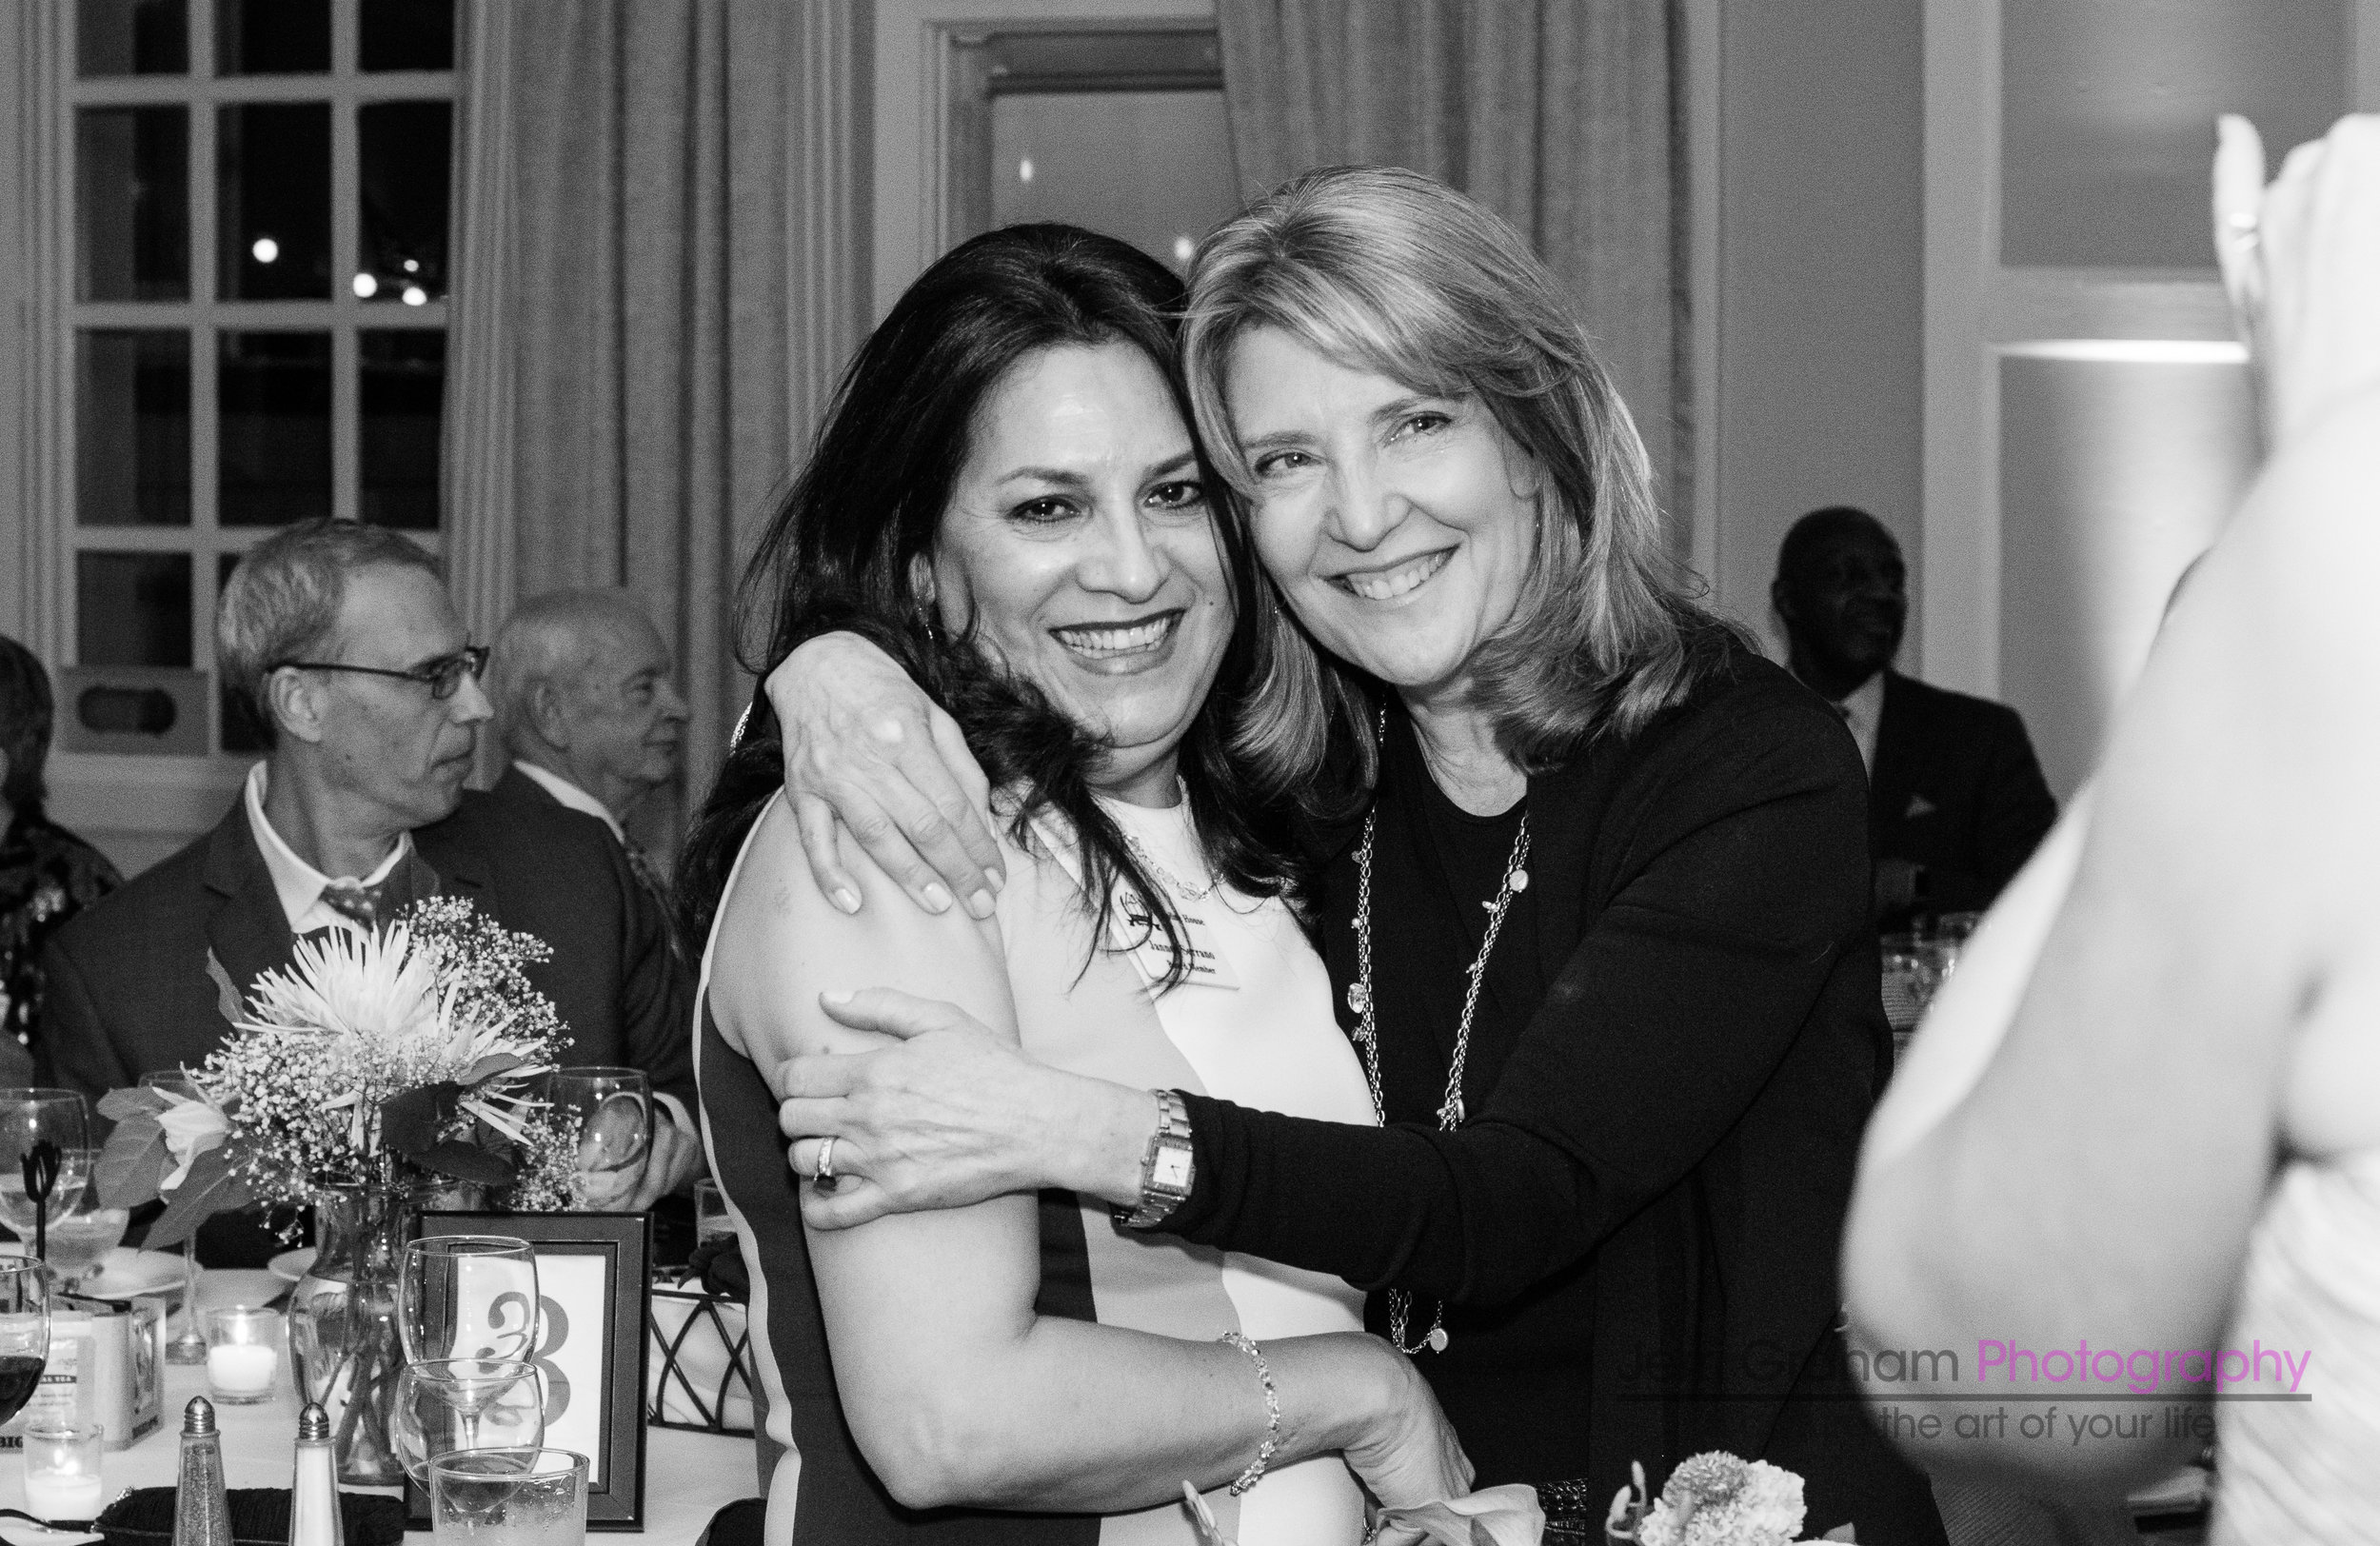 Janned Serrano (left) and Caroline House 2018 Award Honoree Cindy Bigelow (right) at the Starry Night Gala. Cindy is President and CEO of Bigelow Tea. Janned is Executive Assistant and Community Relations Coordinator of Bigelow Tea and is a Caroline House board member.